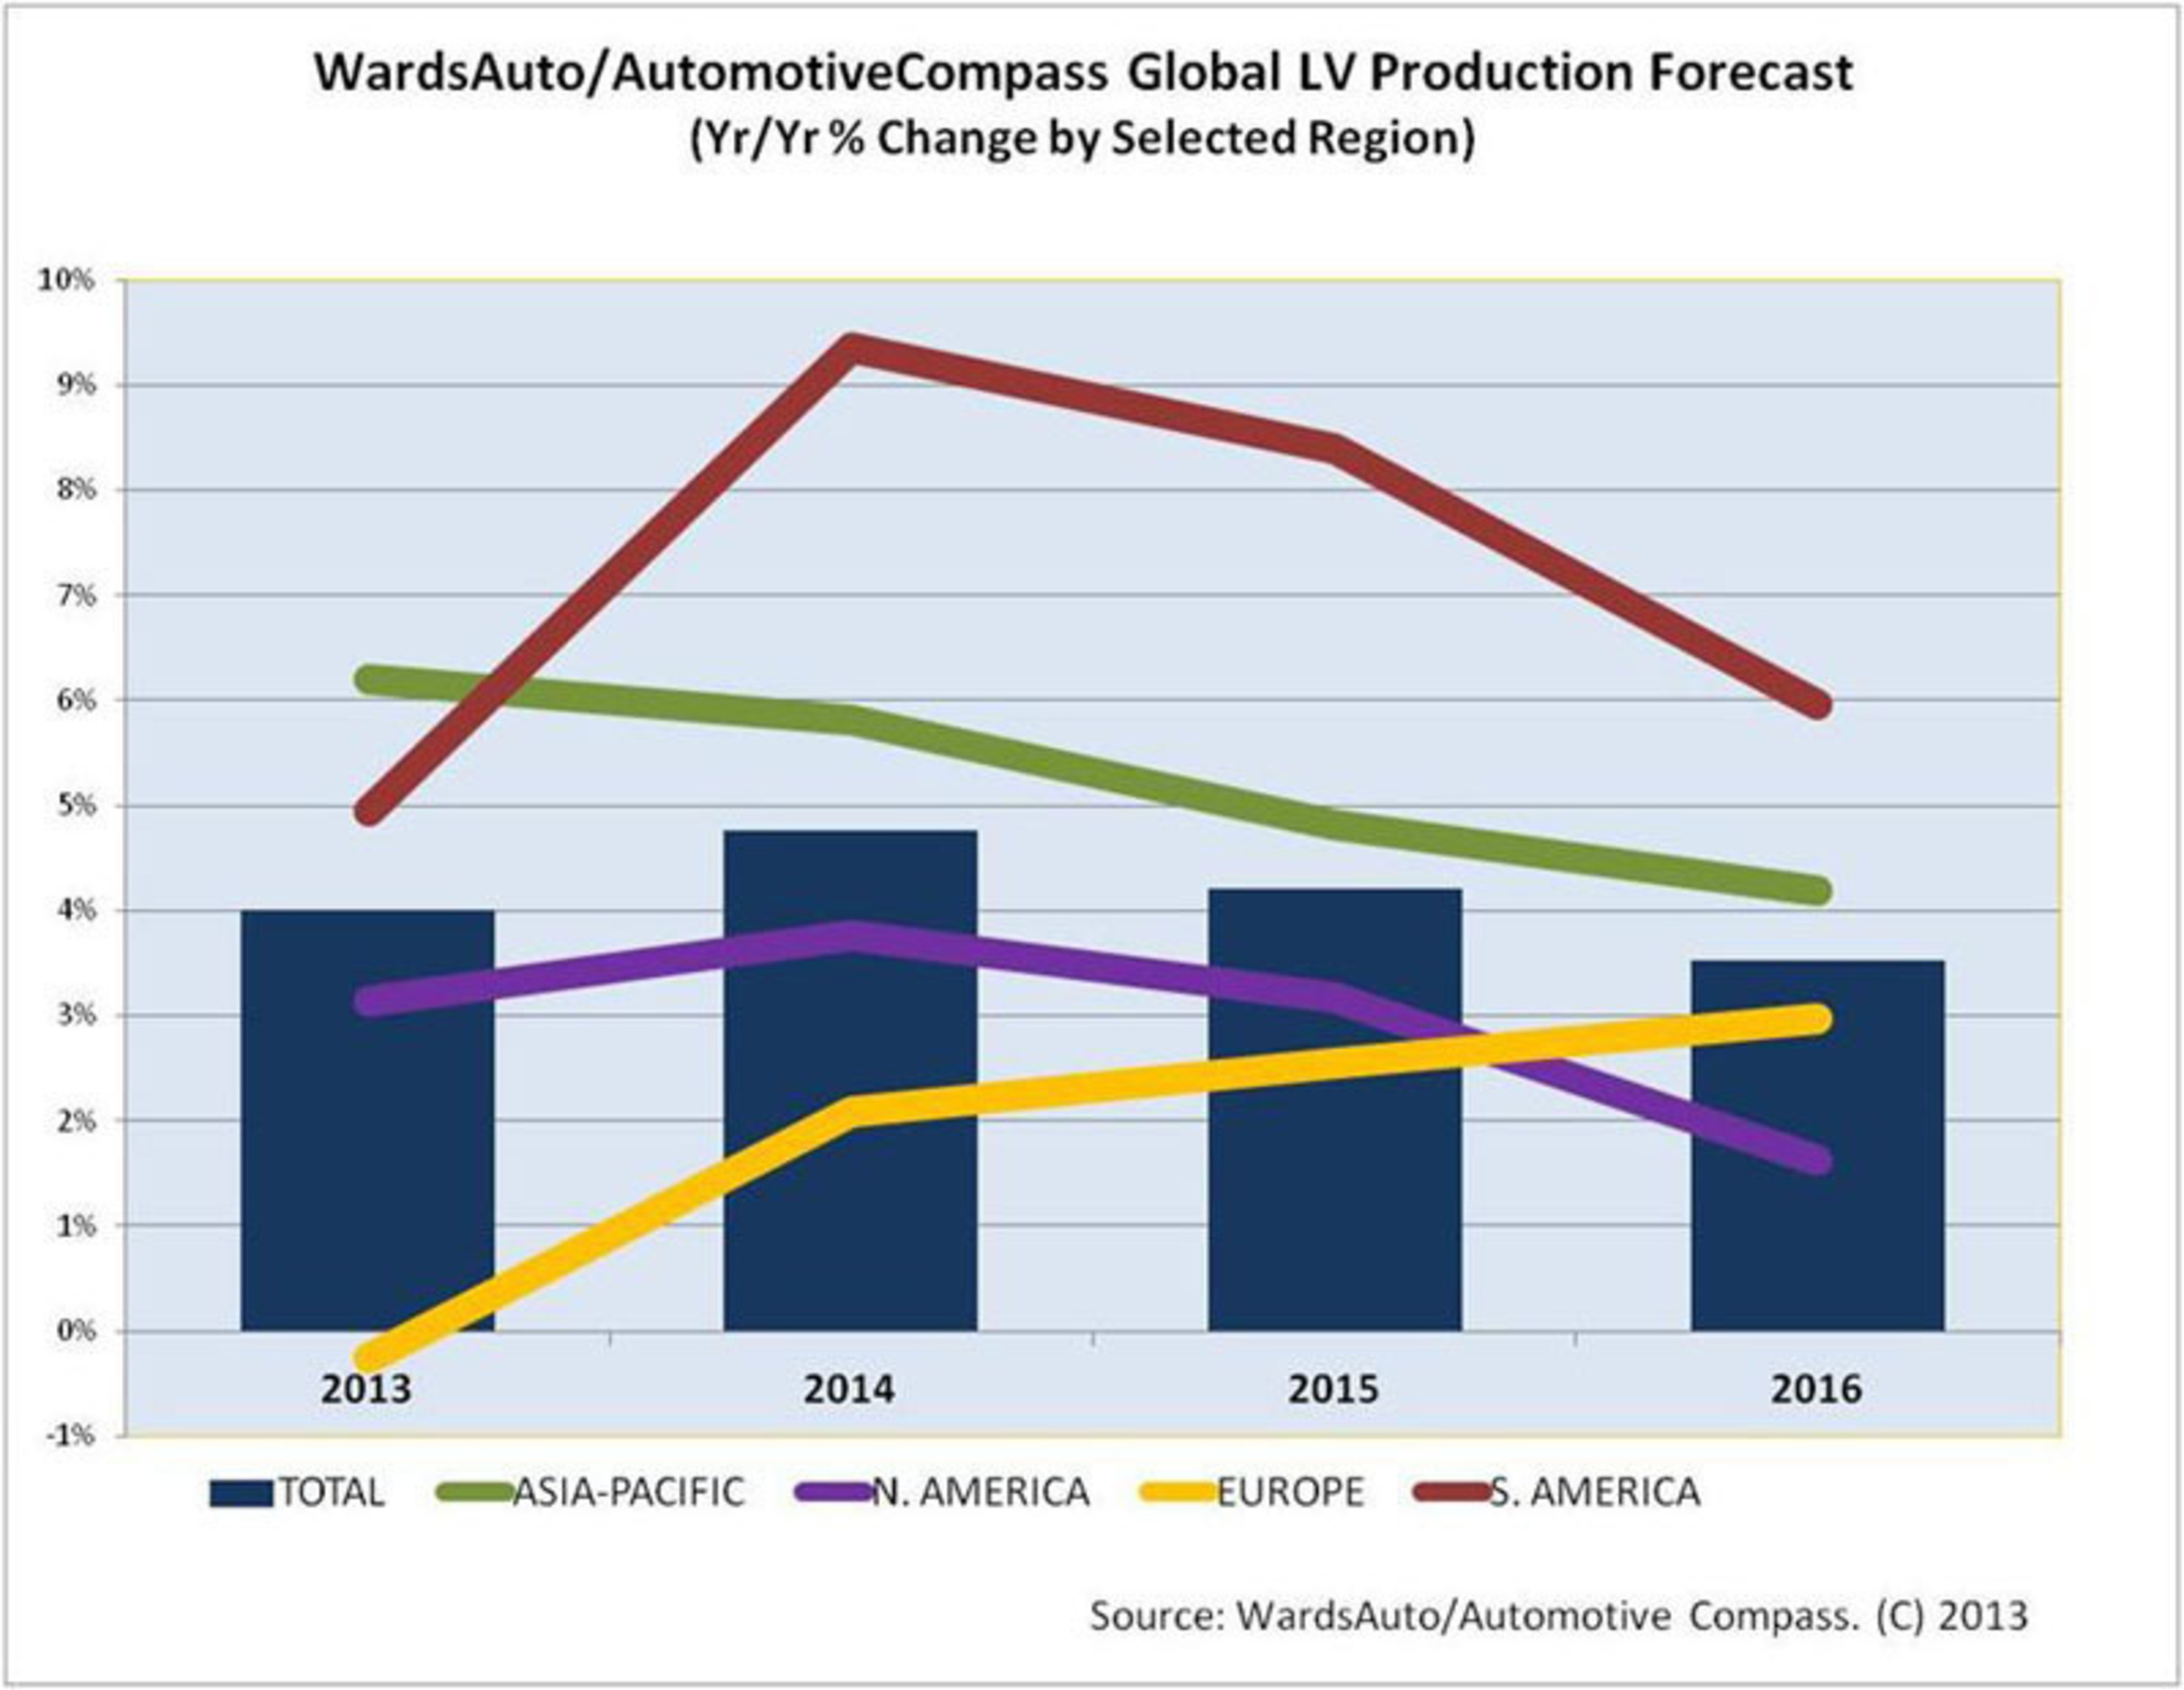 China Dominates World Vehicle Production, U.S. Remains No. 2, Says New Forecast From Penton's